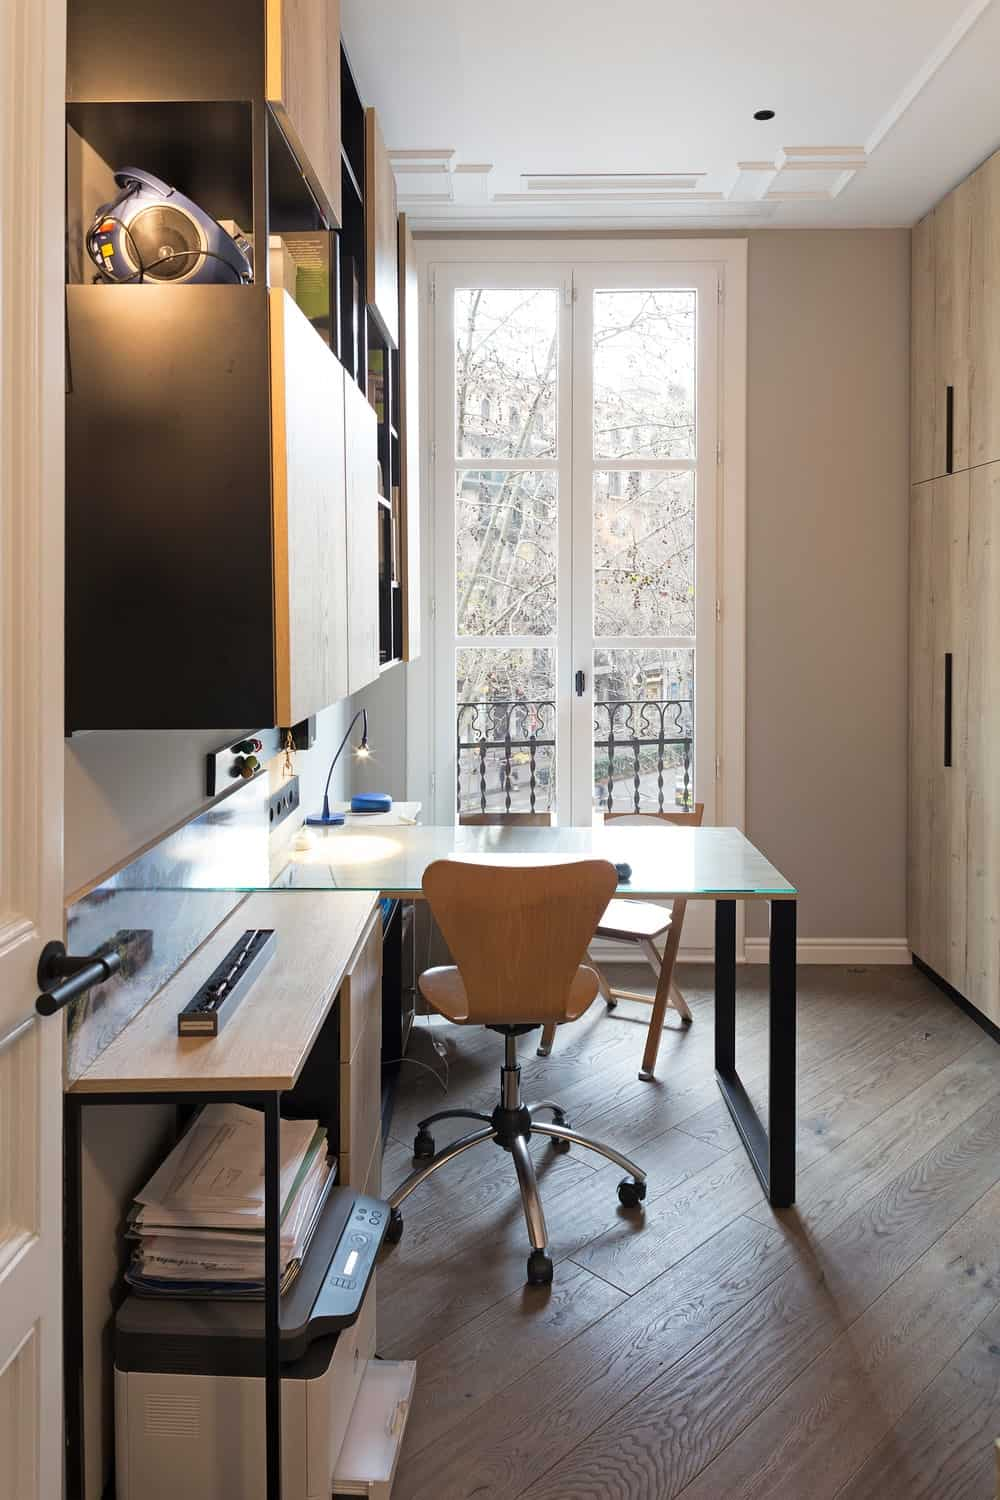 Across from the sofa is this L-shaped office desk paired with a modern office chair facing a set of Fremch doors leading to a balcony.